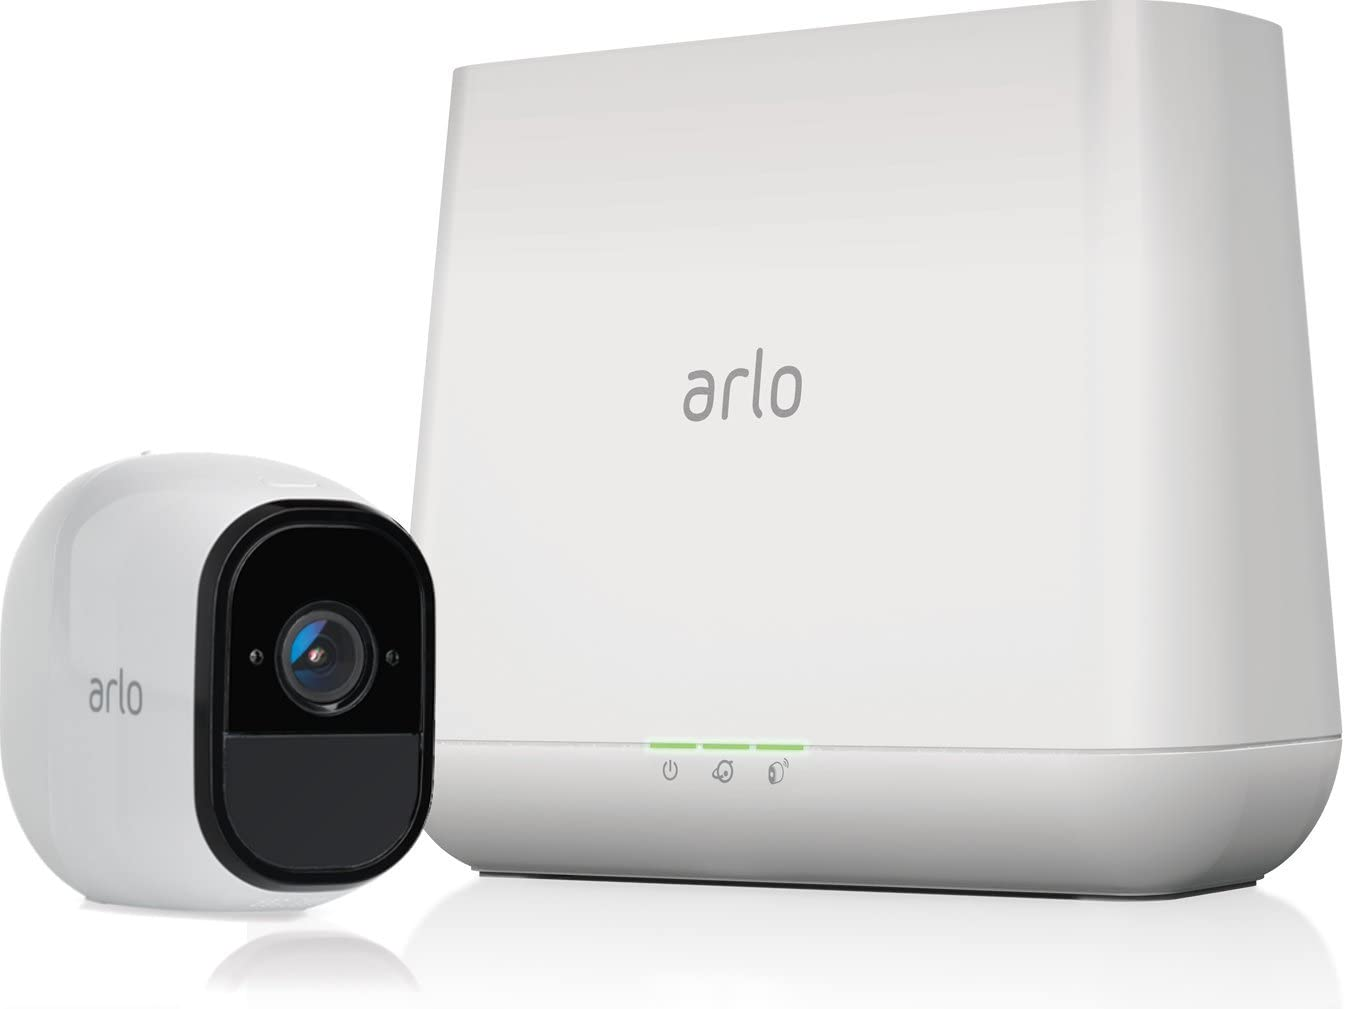 Arlo Pro Smart Security System with 1 Arlo Pro Camera at Small Dog Electronics